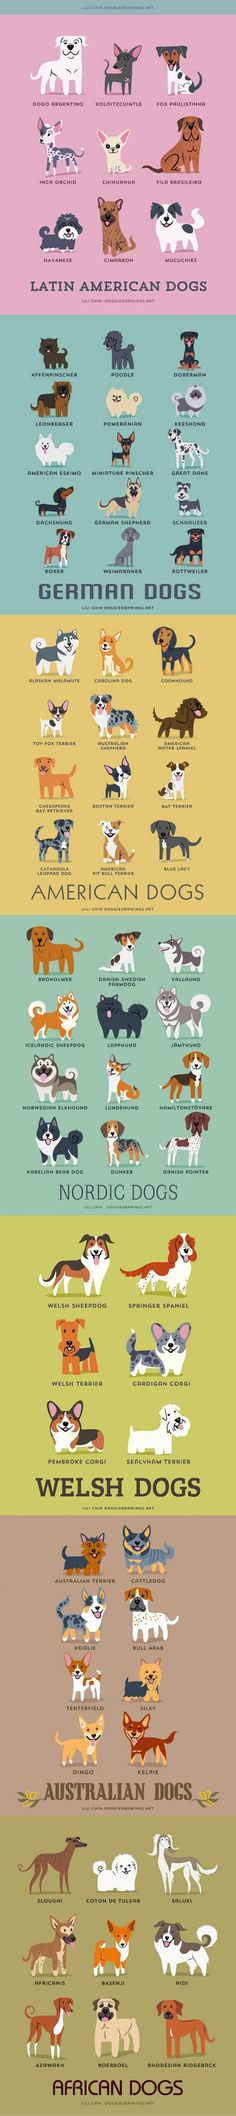 a world of dogs